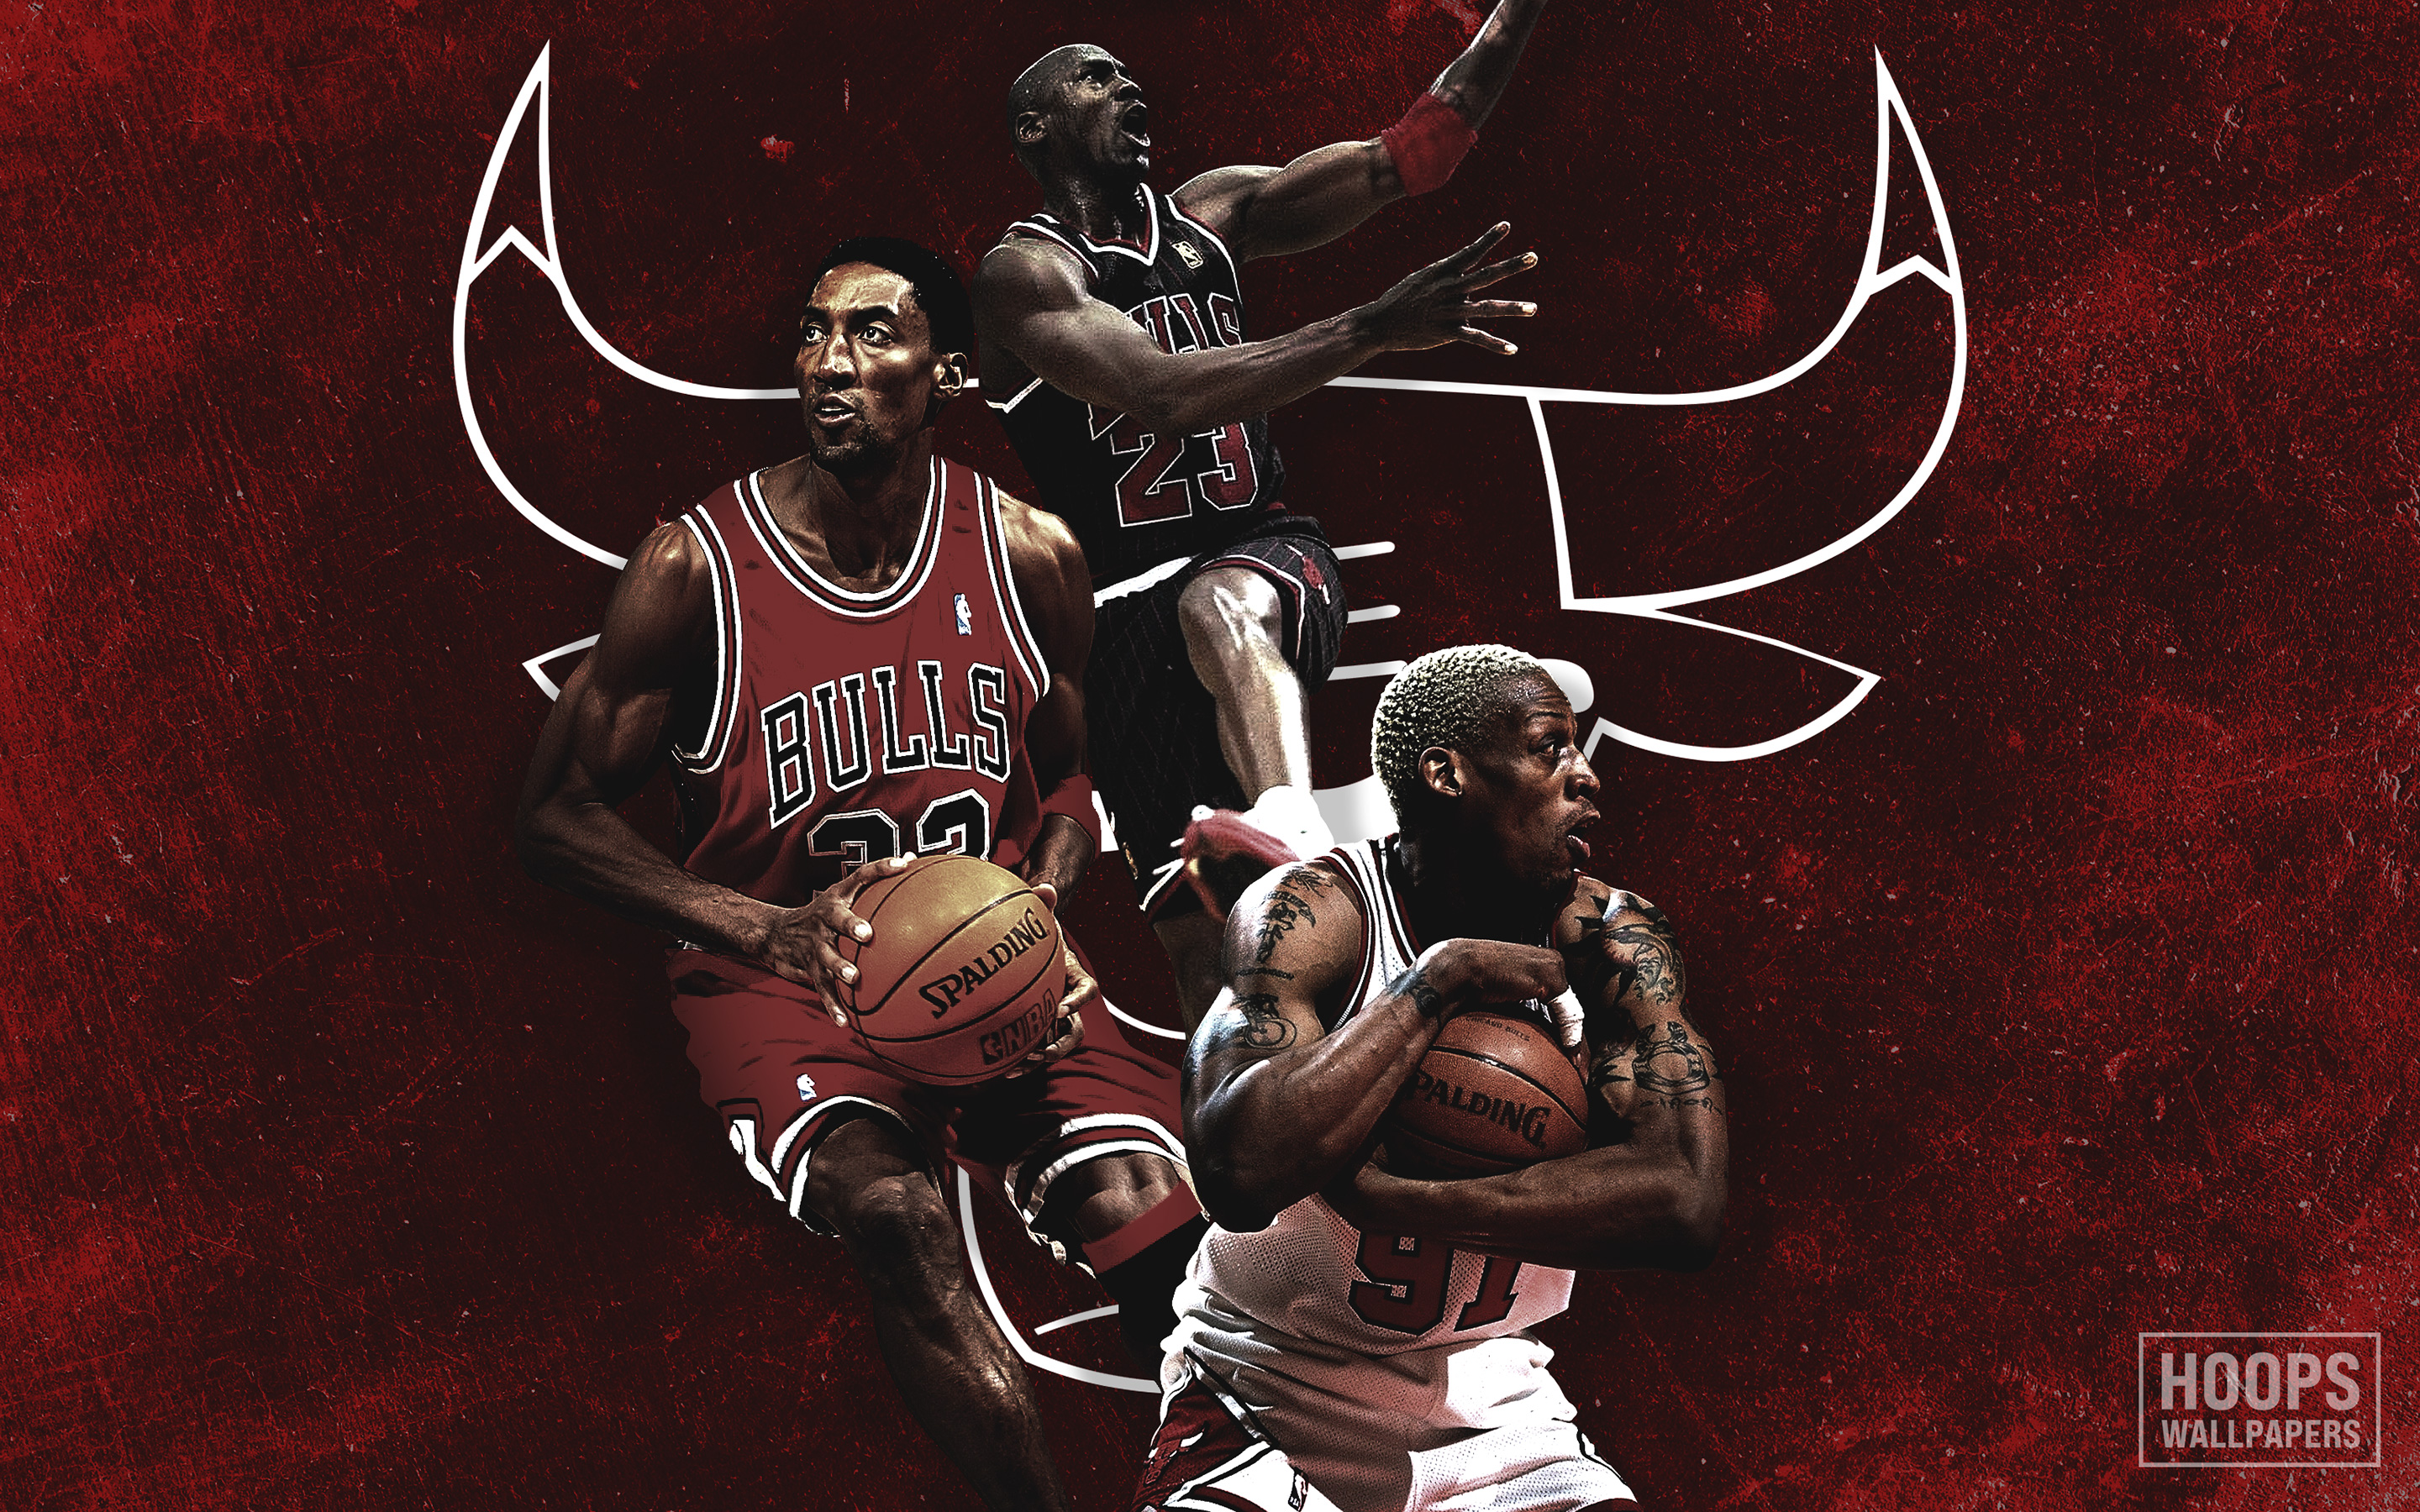 Hoopswallpapers Com Get The Latest Hd And Mobile Nba Wallpapers Today Blog Archive New Scottie Pippen Dennis Rodman And Michael Jordan Chicago Bulls Wallpaper